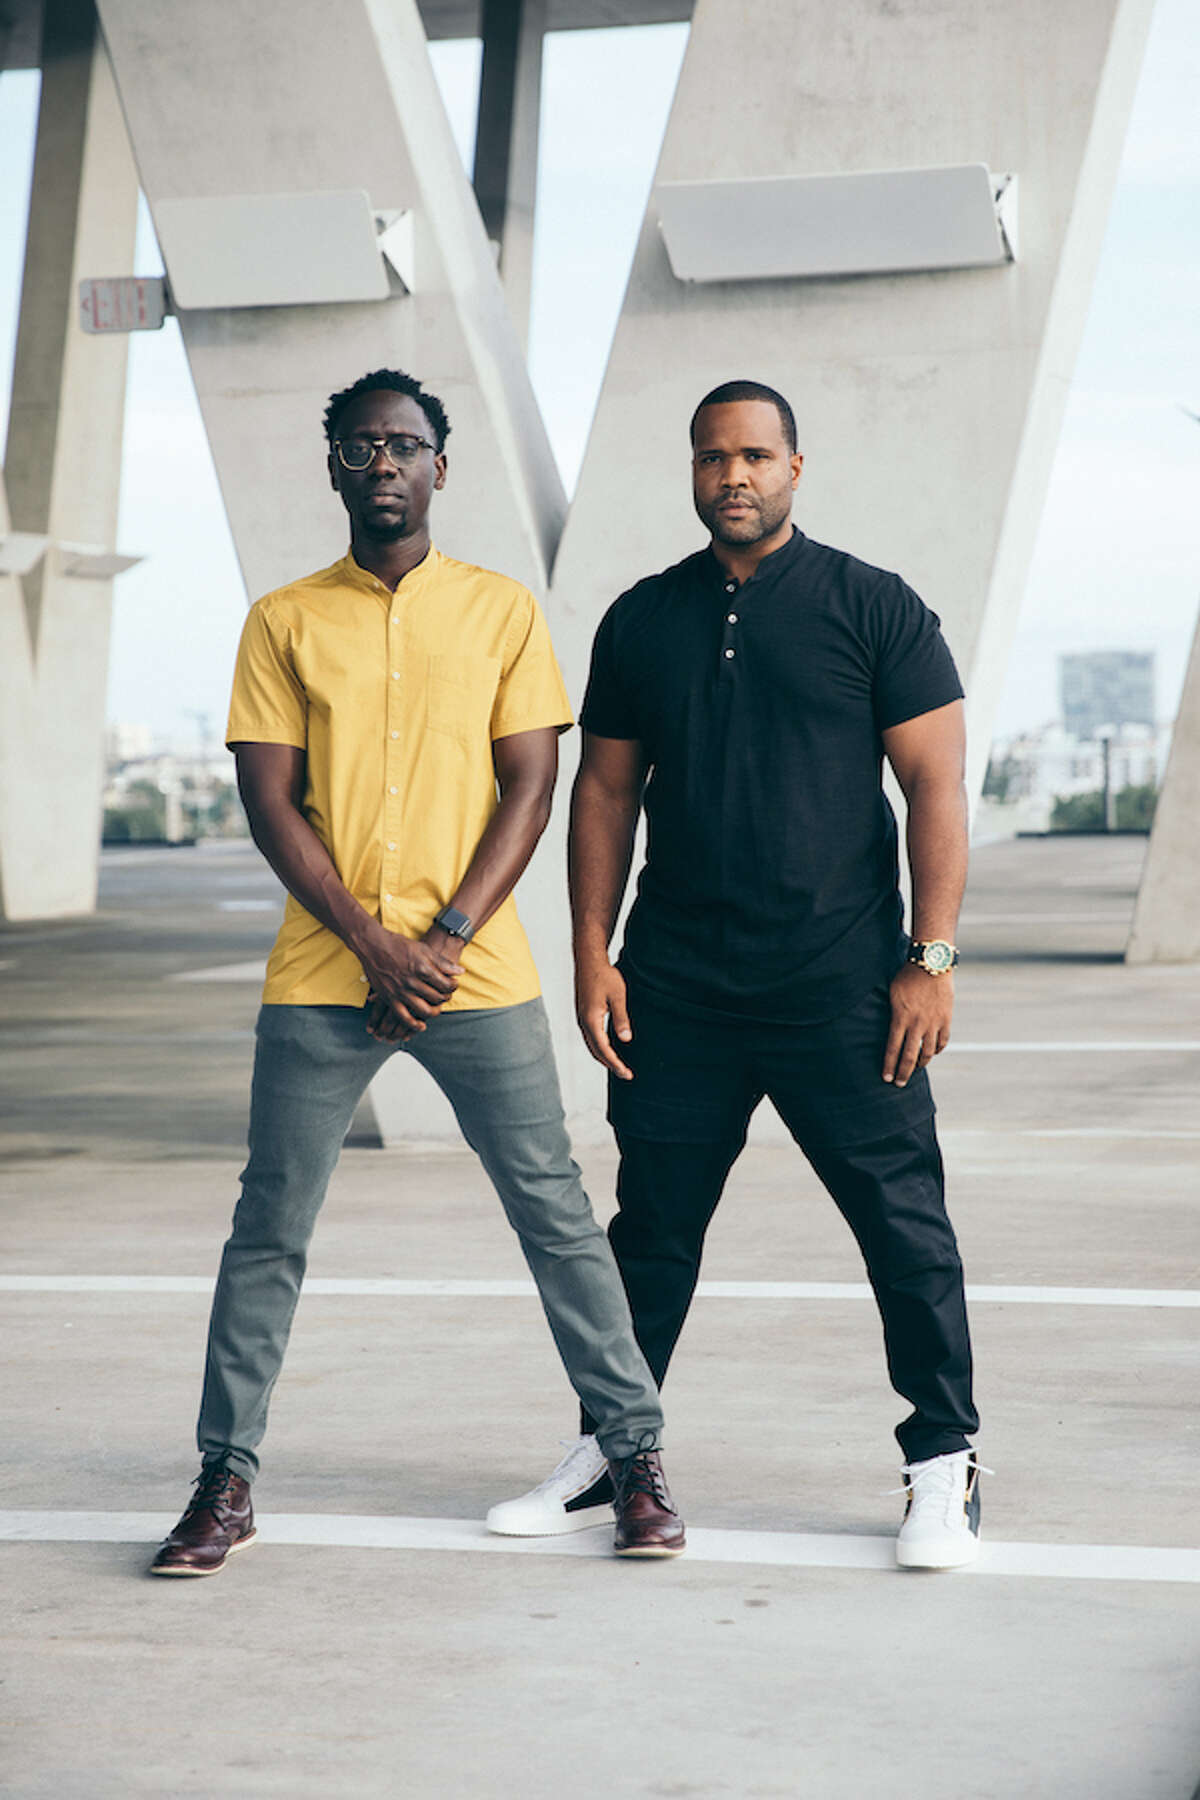 Musical duo Kev Marcus and Wil Baptiste, known as Black Violin, will perform at Midland Center for the Arts on Saturday, Oct. 23.